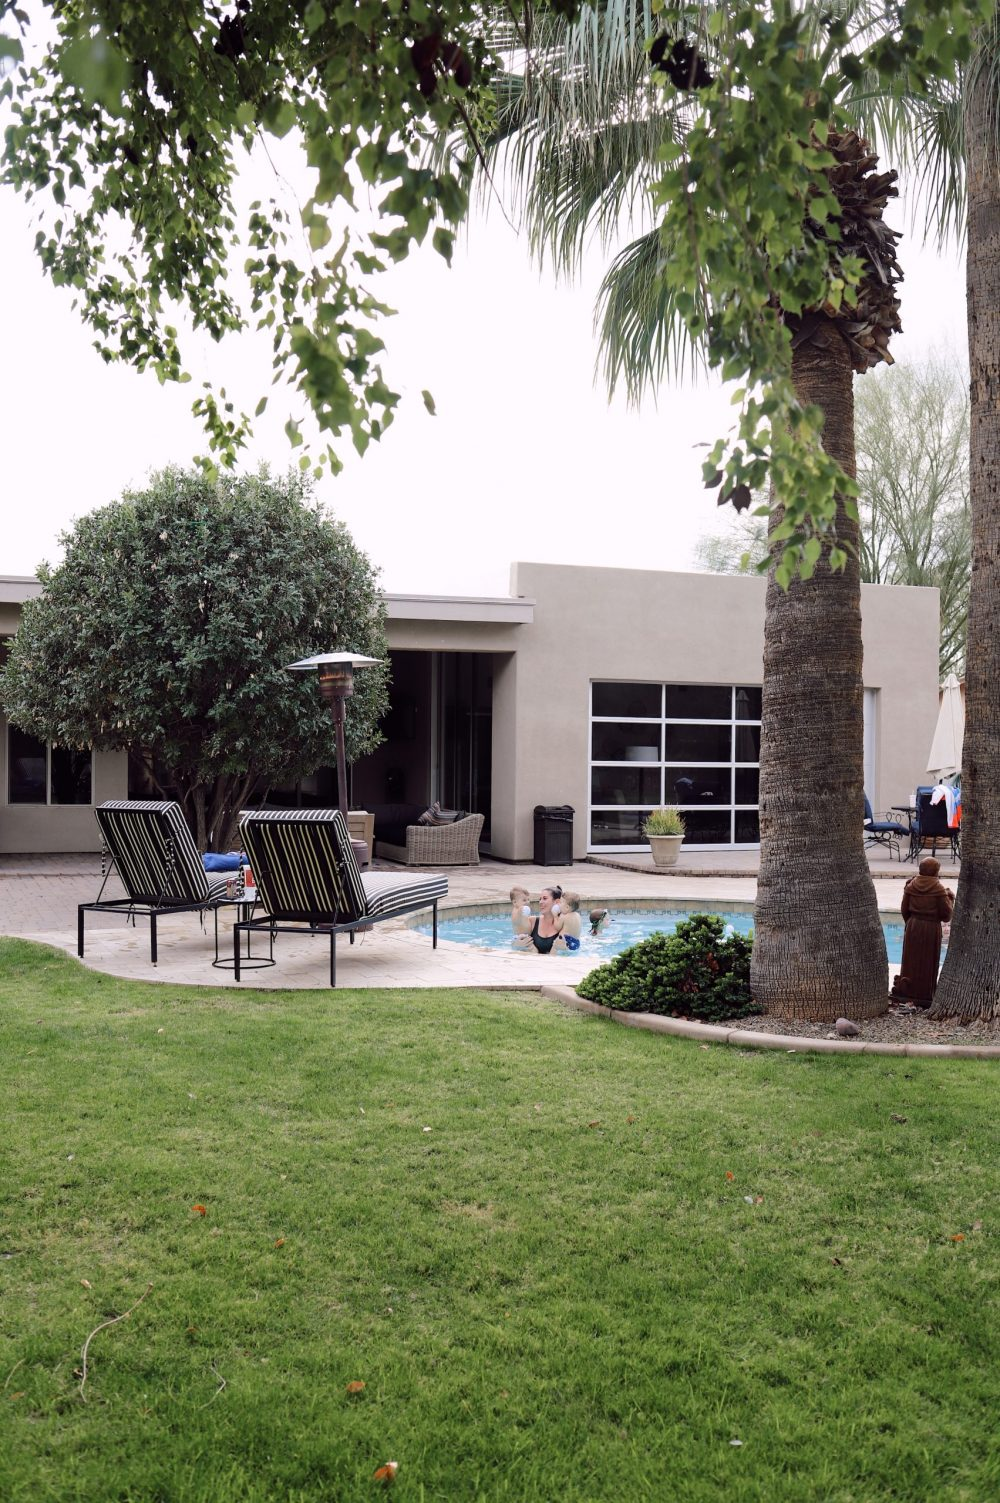 One of the Best Secret Winter Sun Destinations, Scottsdale Arizona. Family-friendly property rental at Bella's Villa Voltaire |Guide by popular Florida travel blog, Fresh Mommy Blog: image of a mom and her babies swimming in a outdoor pool at Bella's Villa Voltaire.